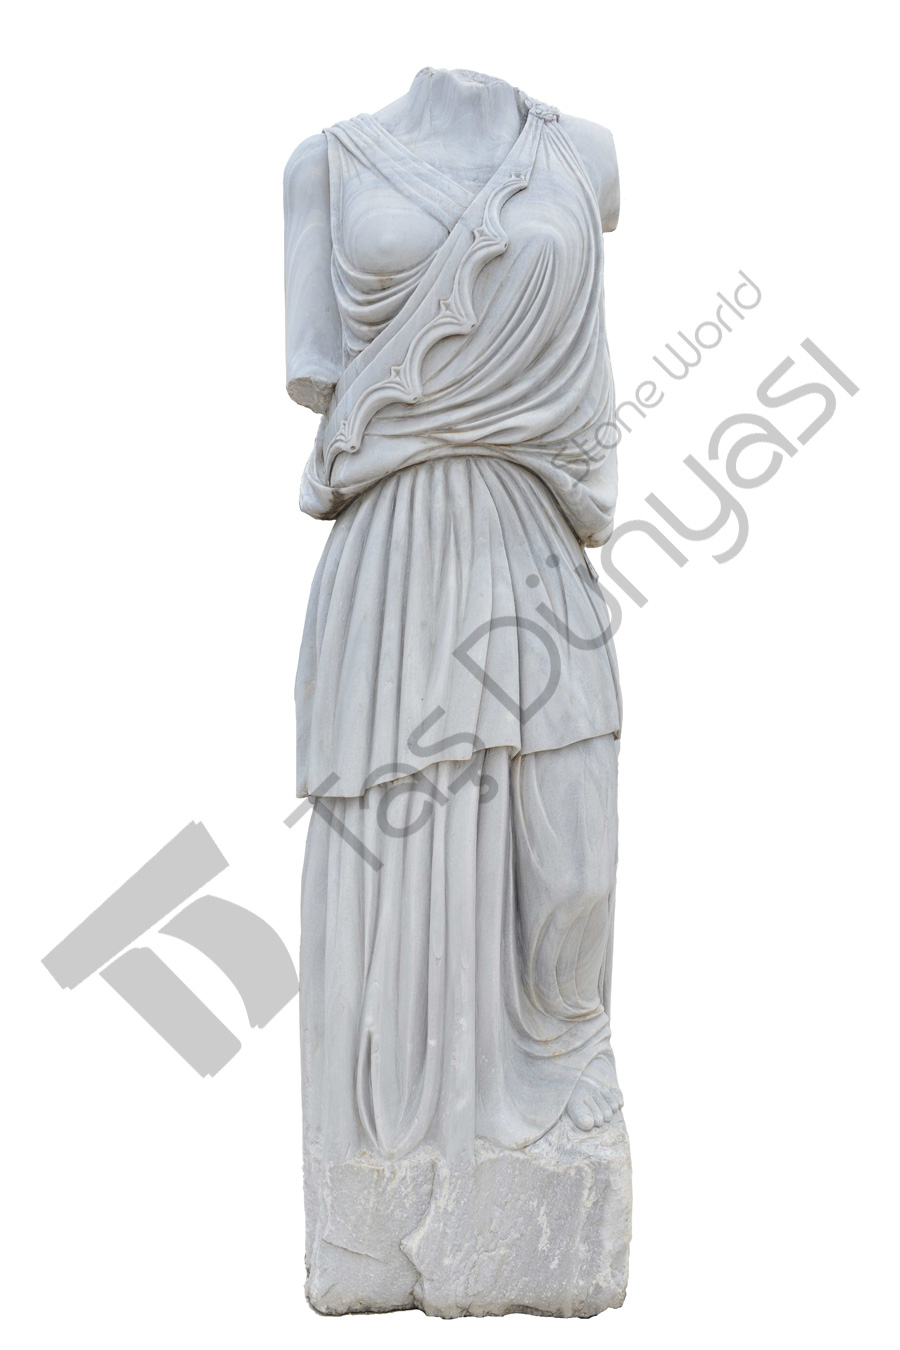 Athena Sculpture